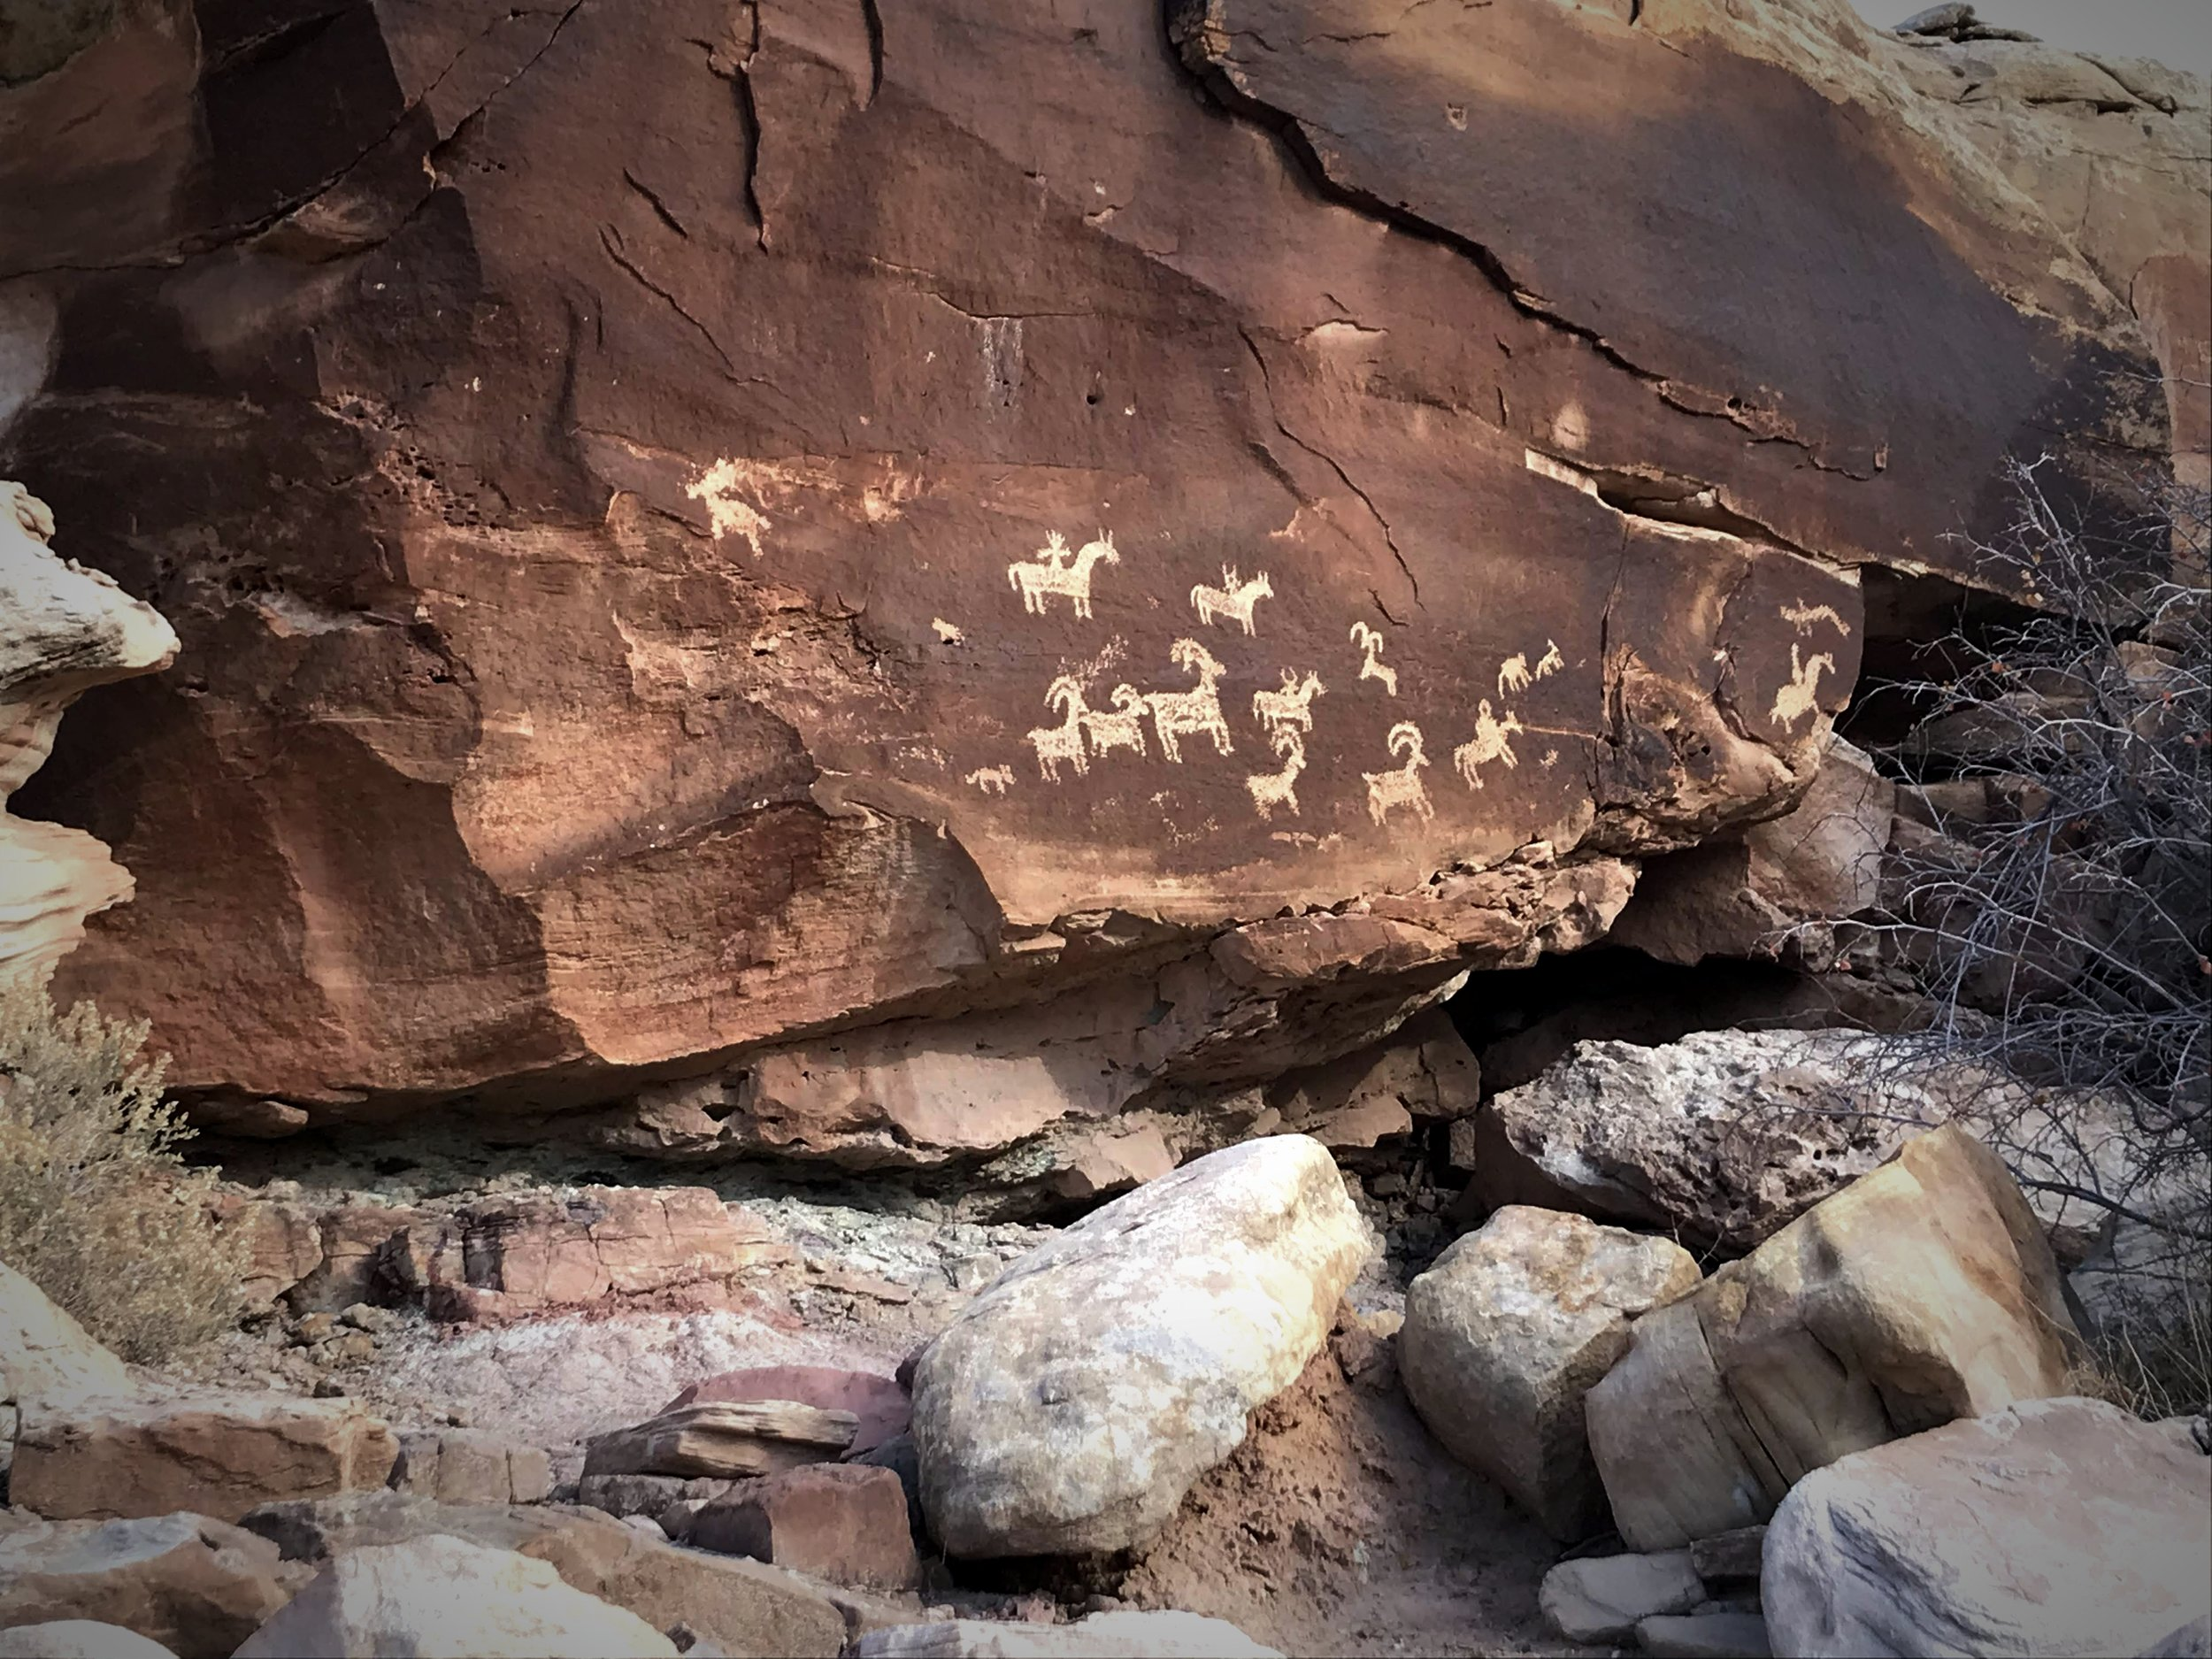 The Ute petroglyphs are really defined in the dark desert varnish on the rock.